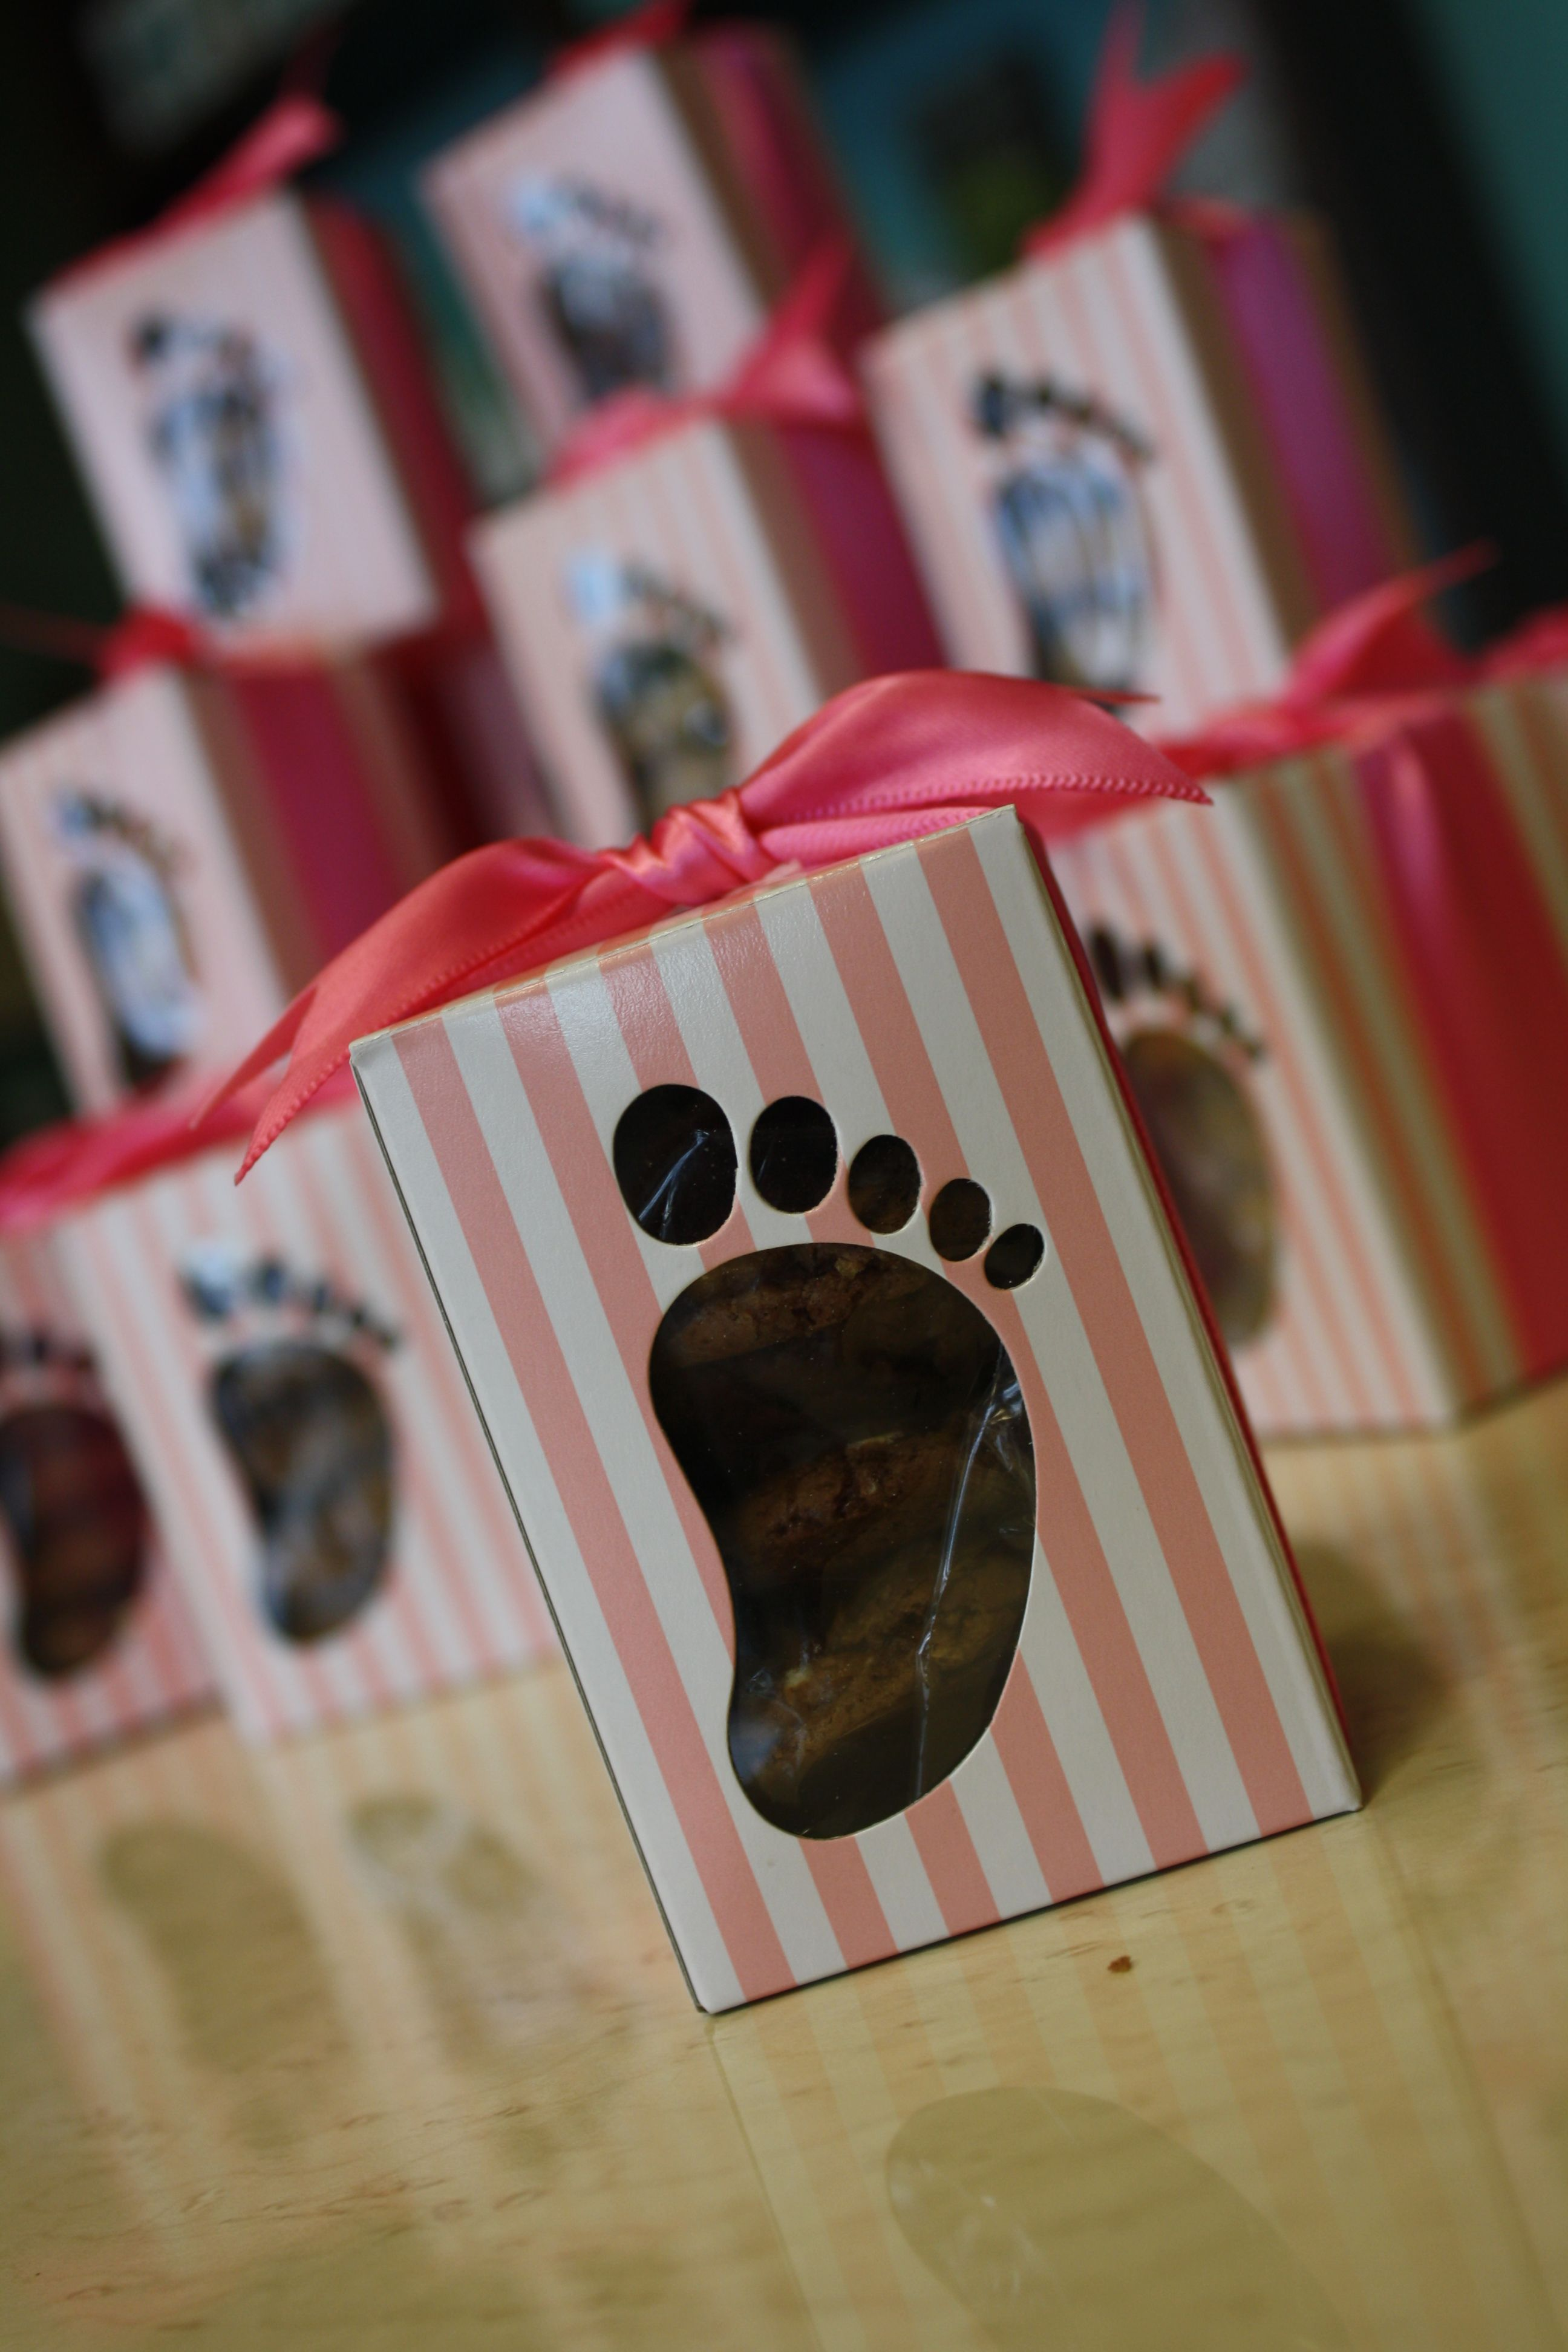 here's a close up of the cutest baby shower favors EVER! Only at Kathleens Cookies!